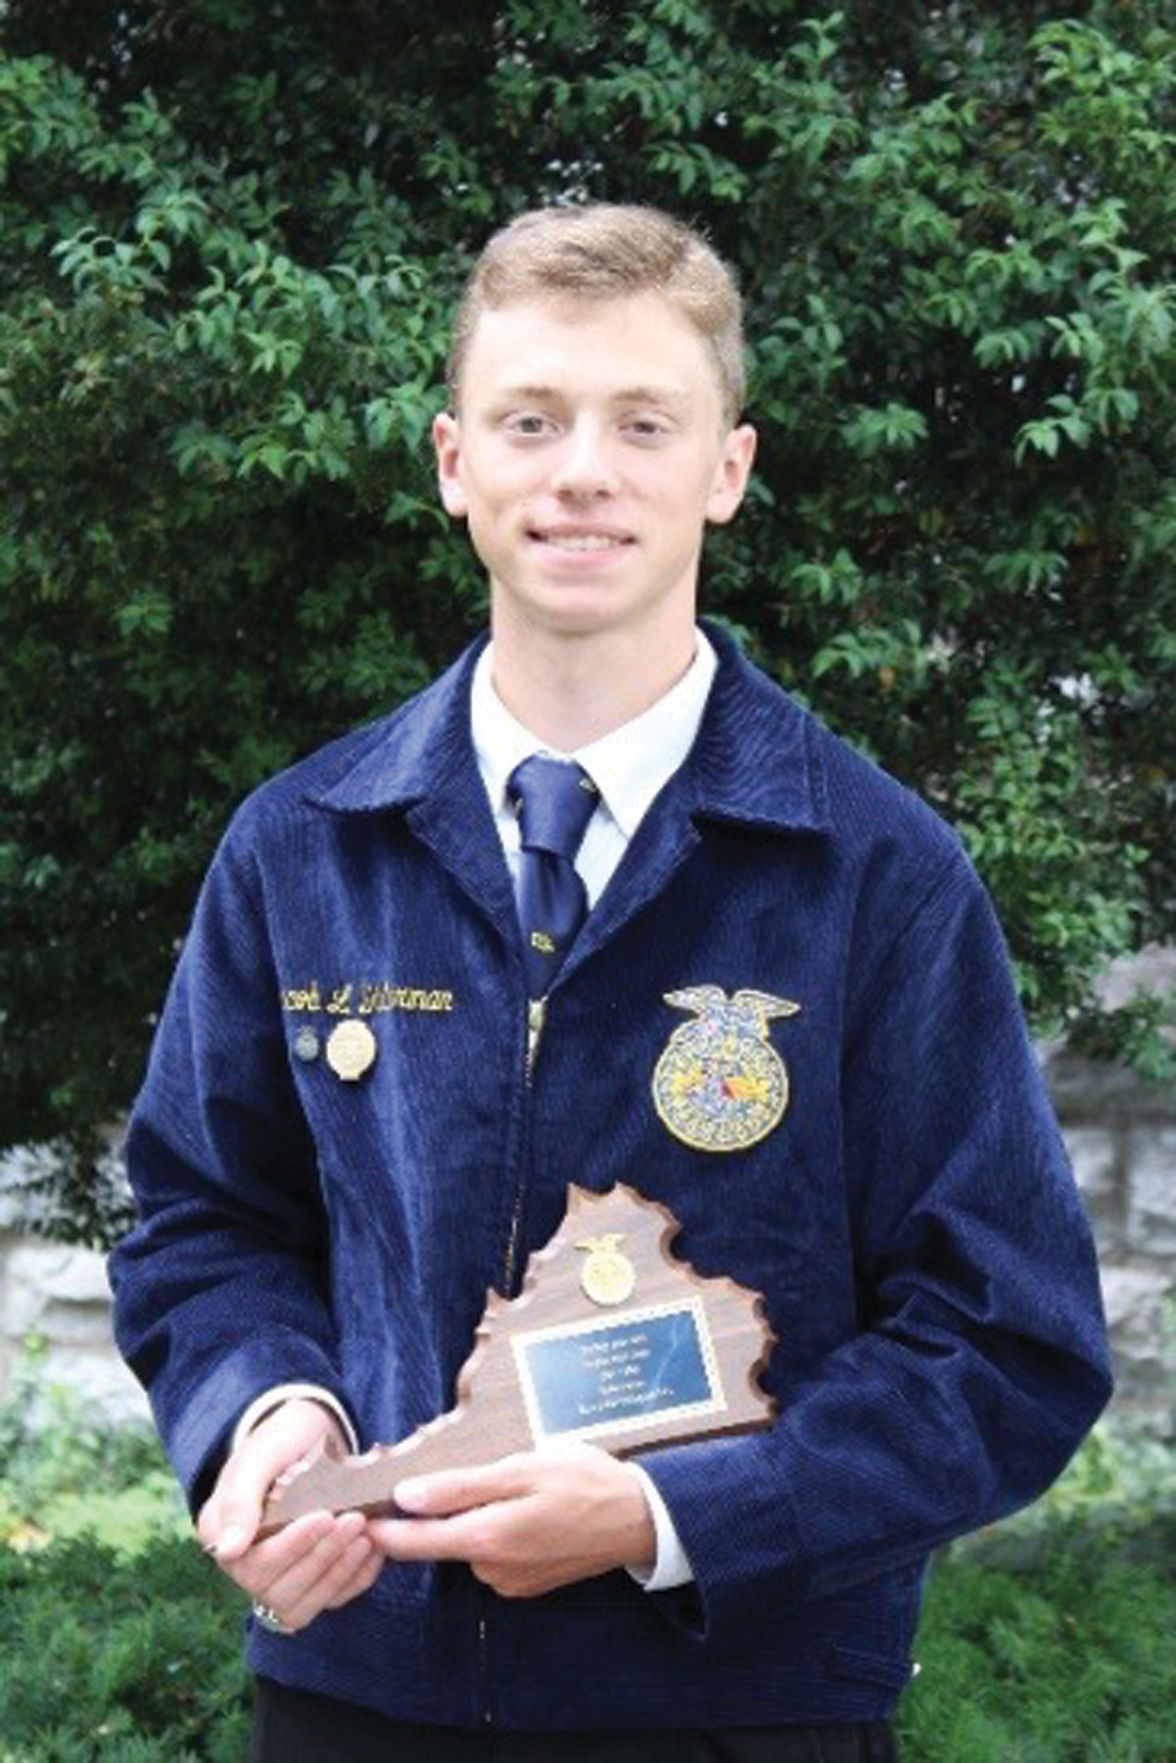 Fifth highest in Individual State Employment Skills, Jacob Dinterman